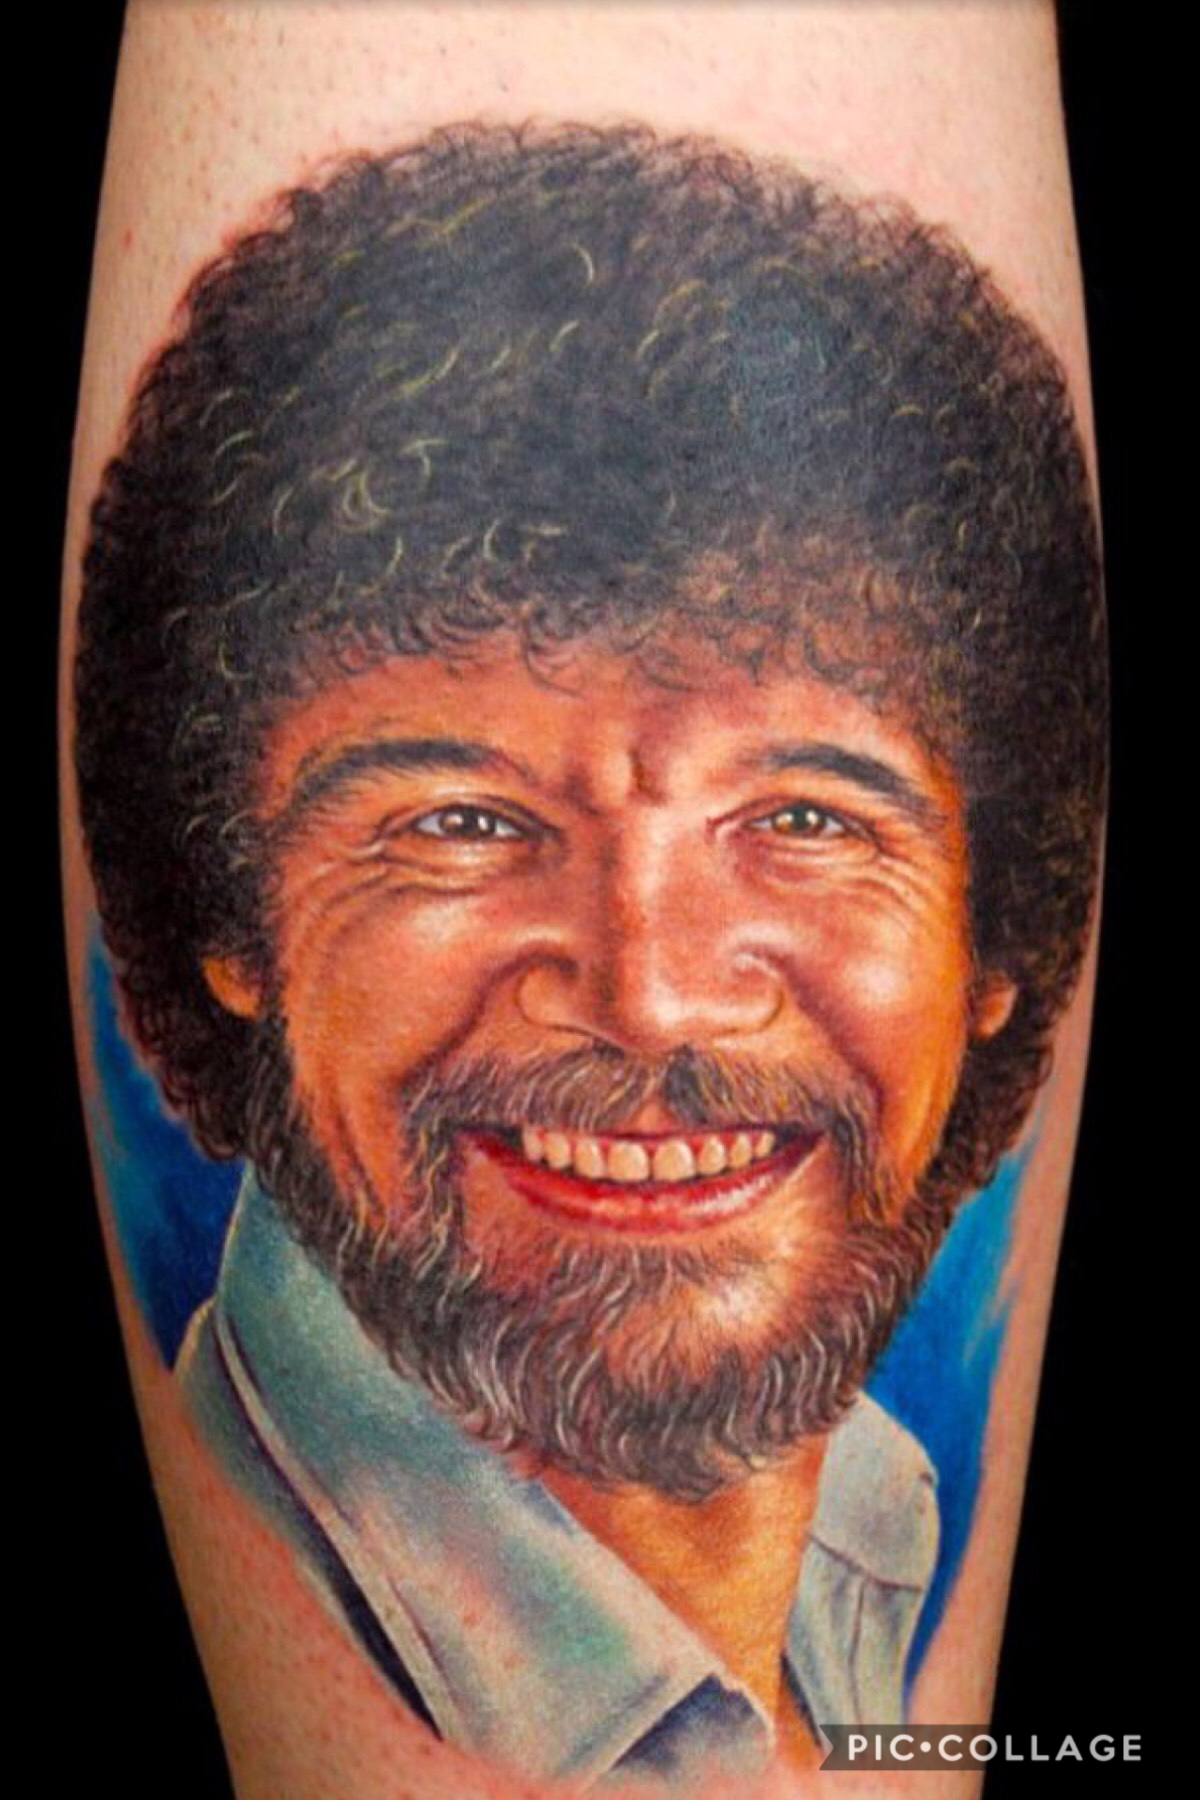 This isn't a collage... someone got a tattoo of Bob Ross! That's a true fan🌲